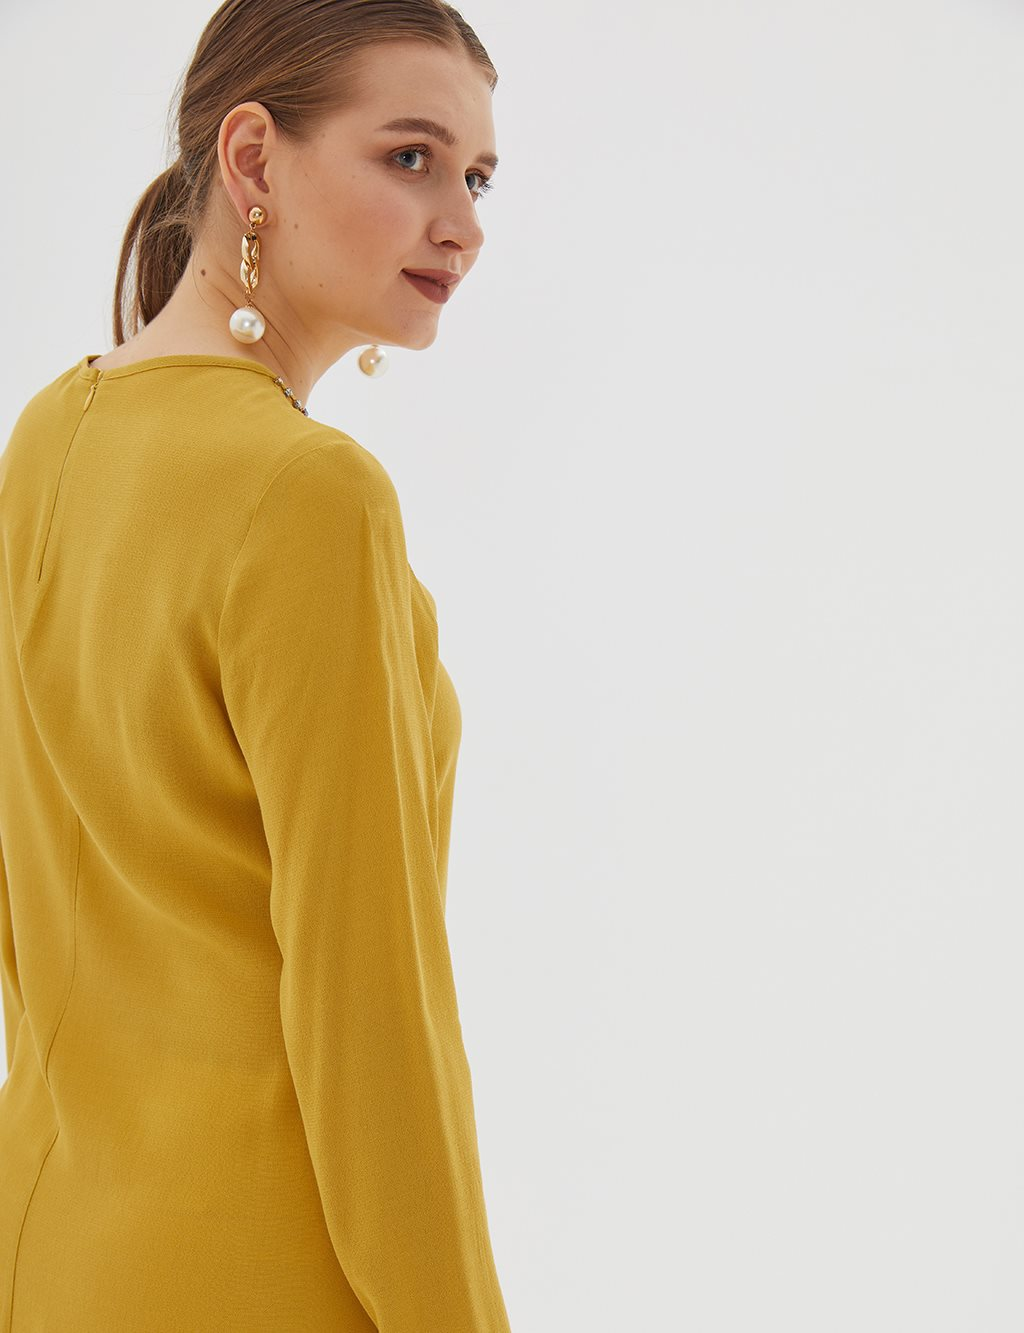 Collar Detailed Asymmetric Tunic B20 21018 Yellow